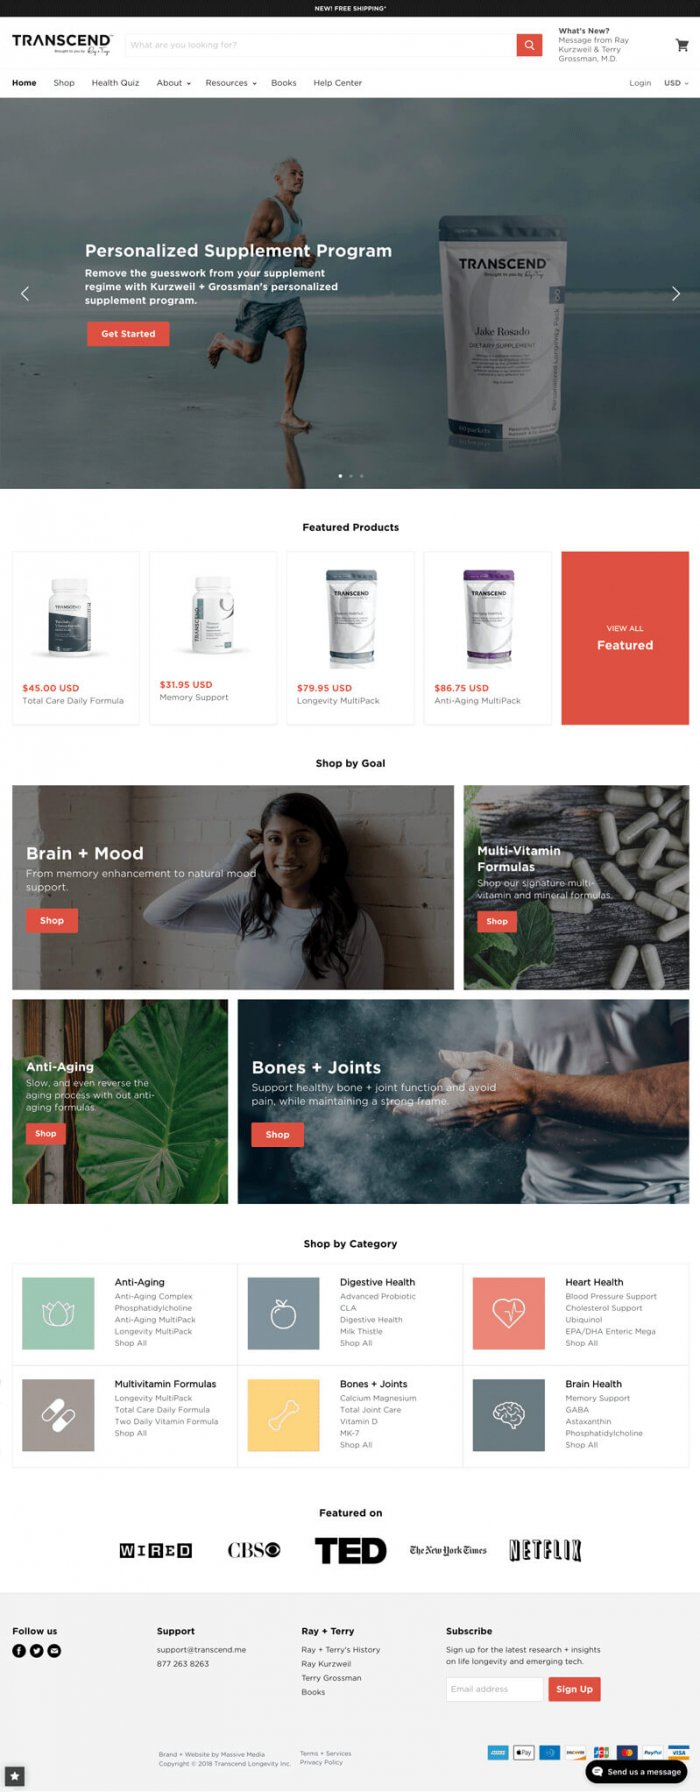 website design example for a healthcare ecommerce website